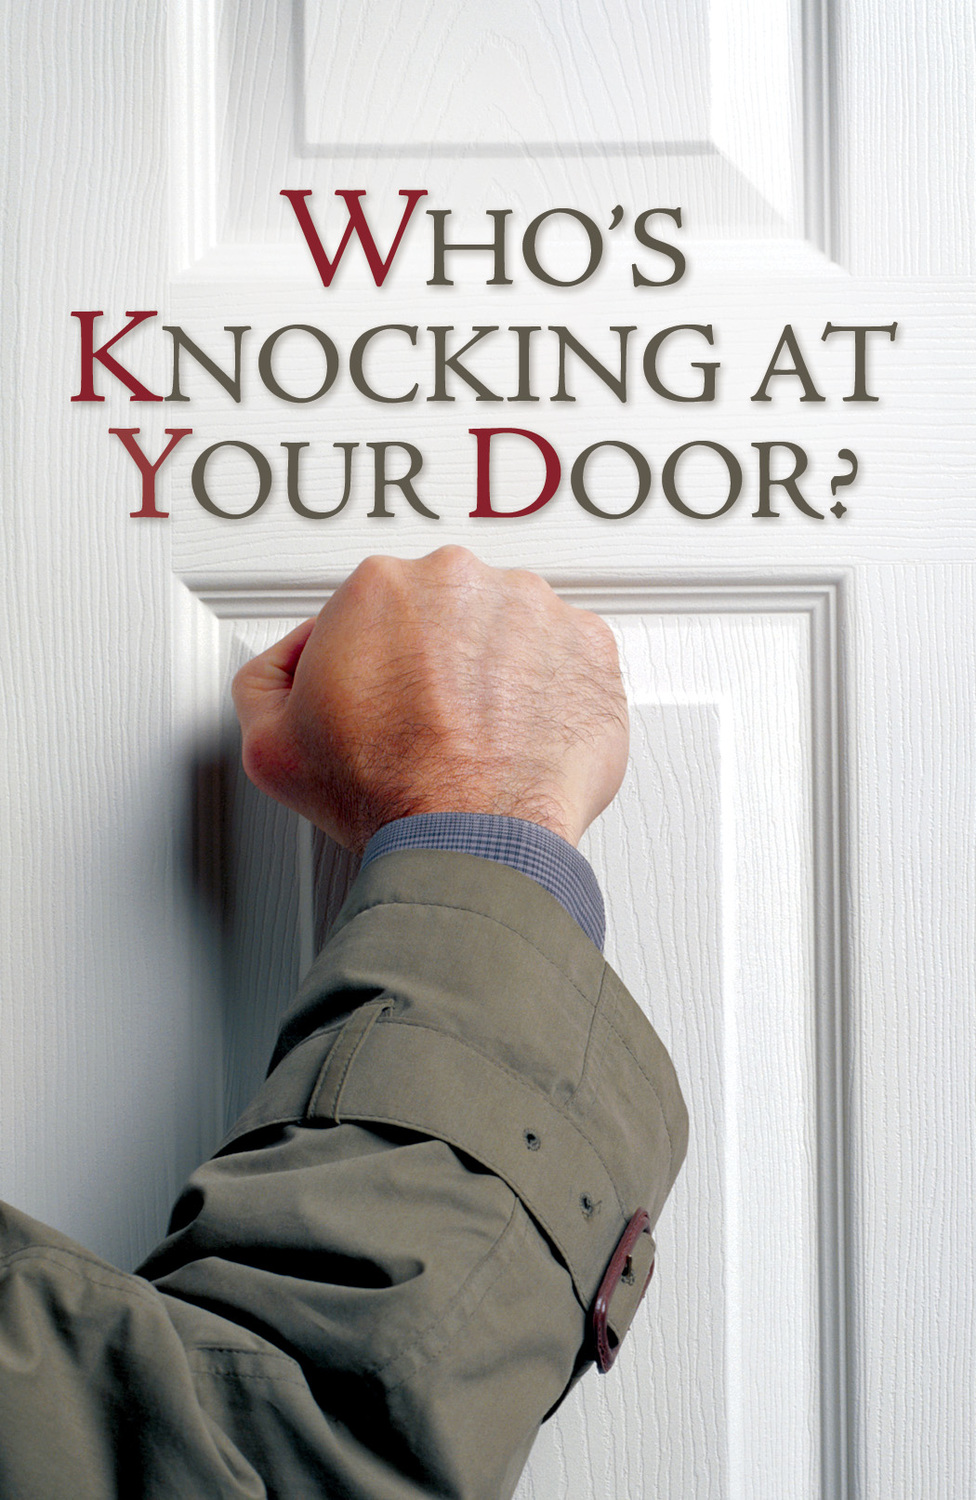 Who's Knocking at Your Door?